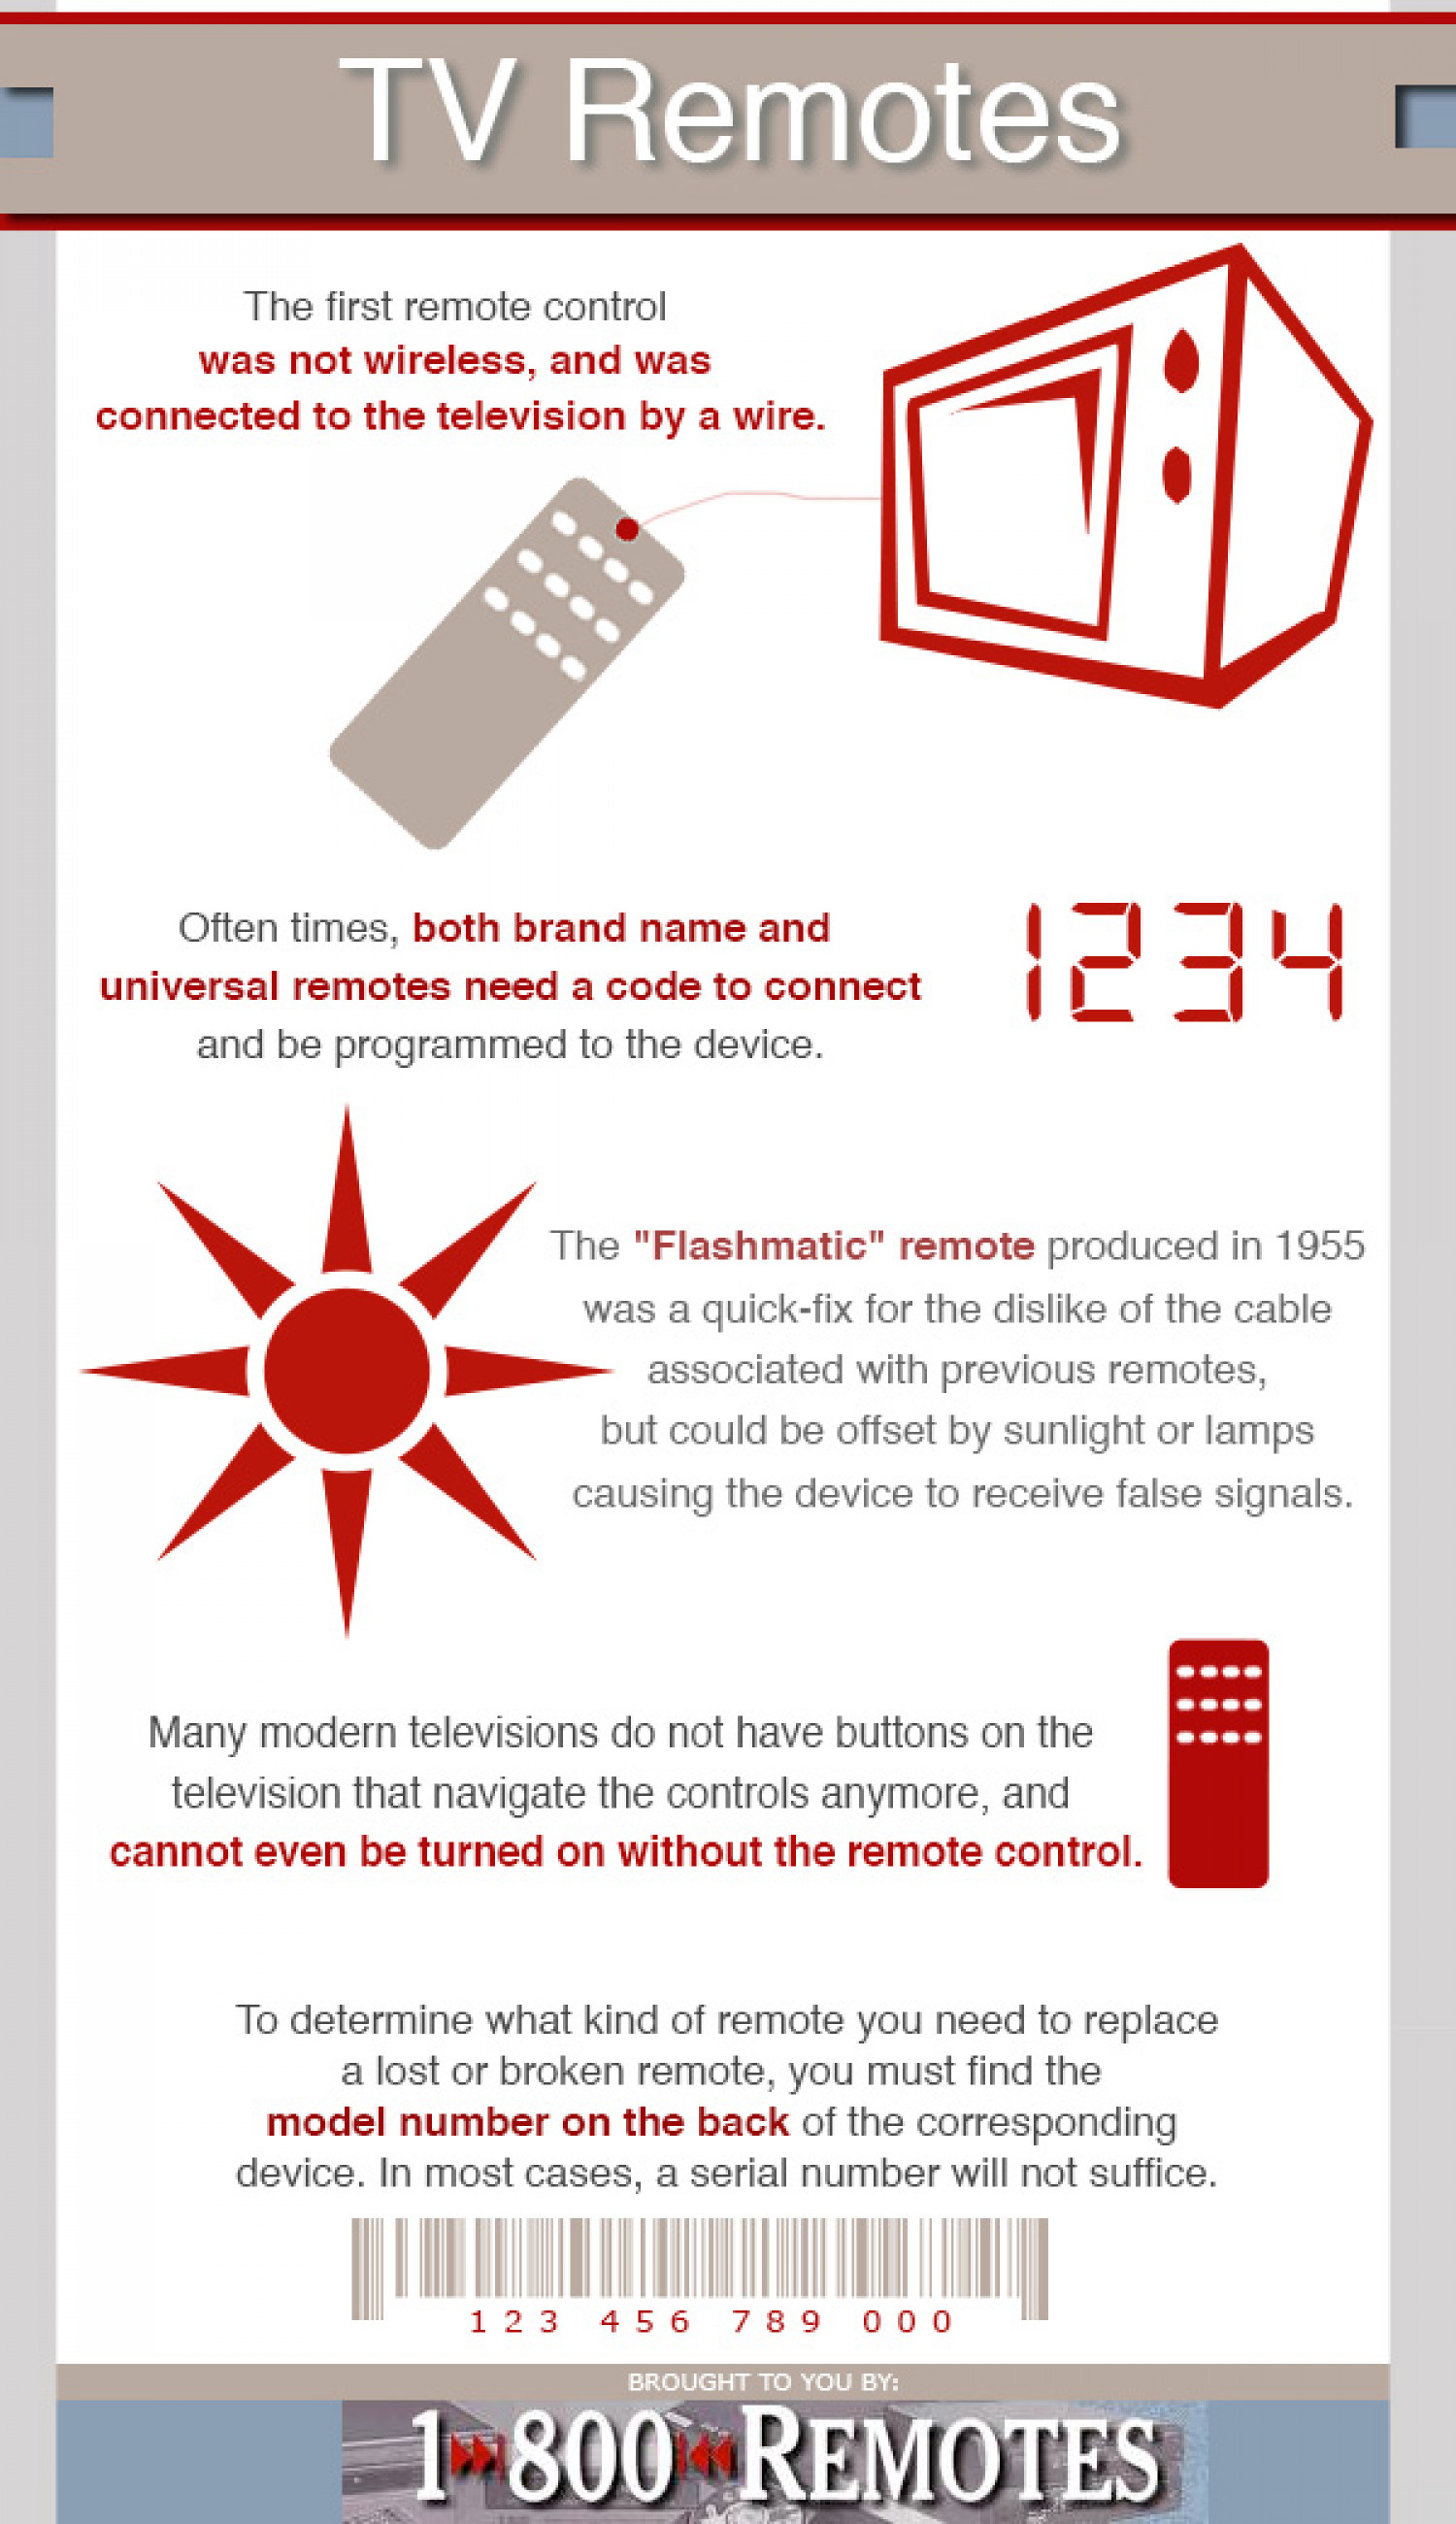 TV Remotes Infographic